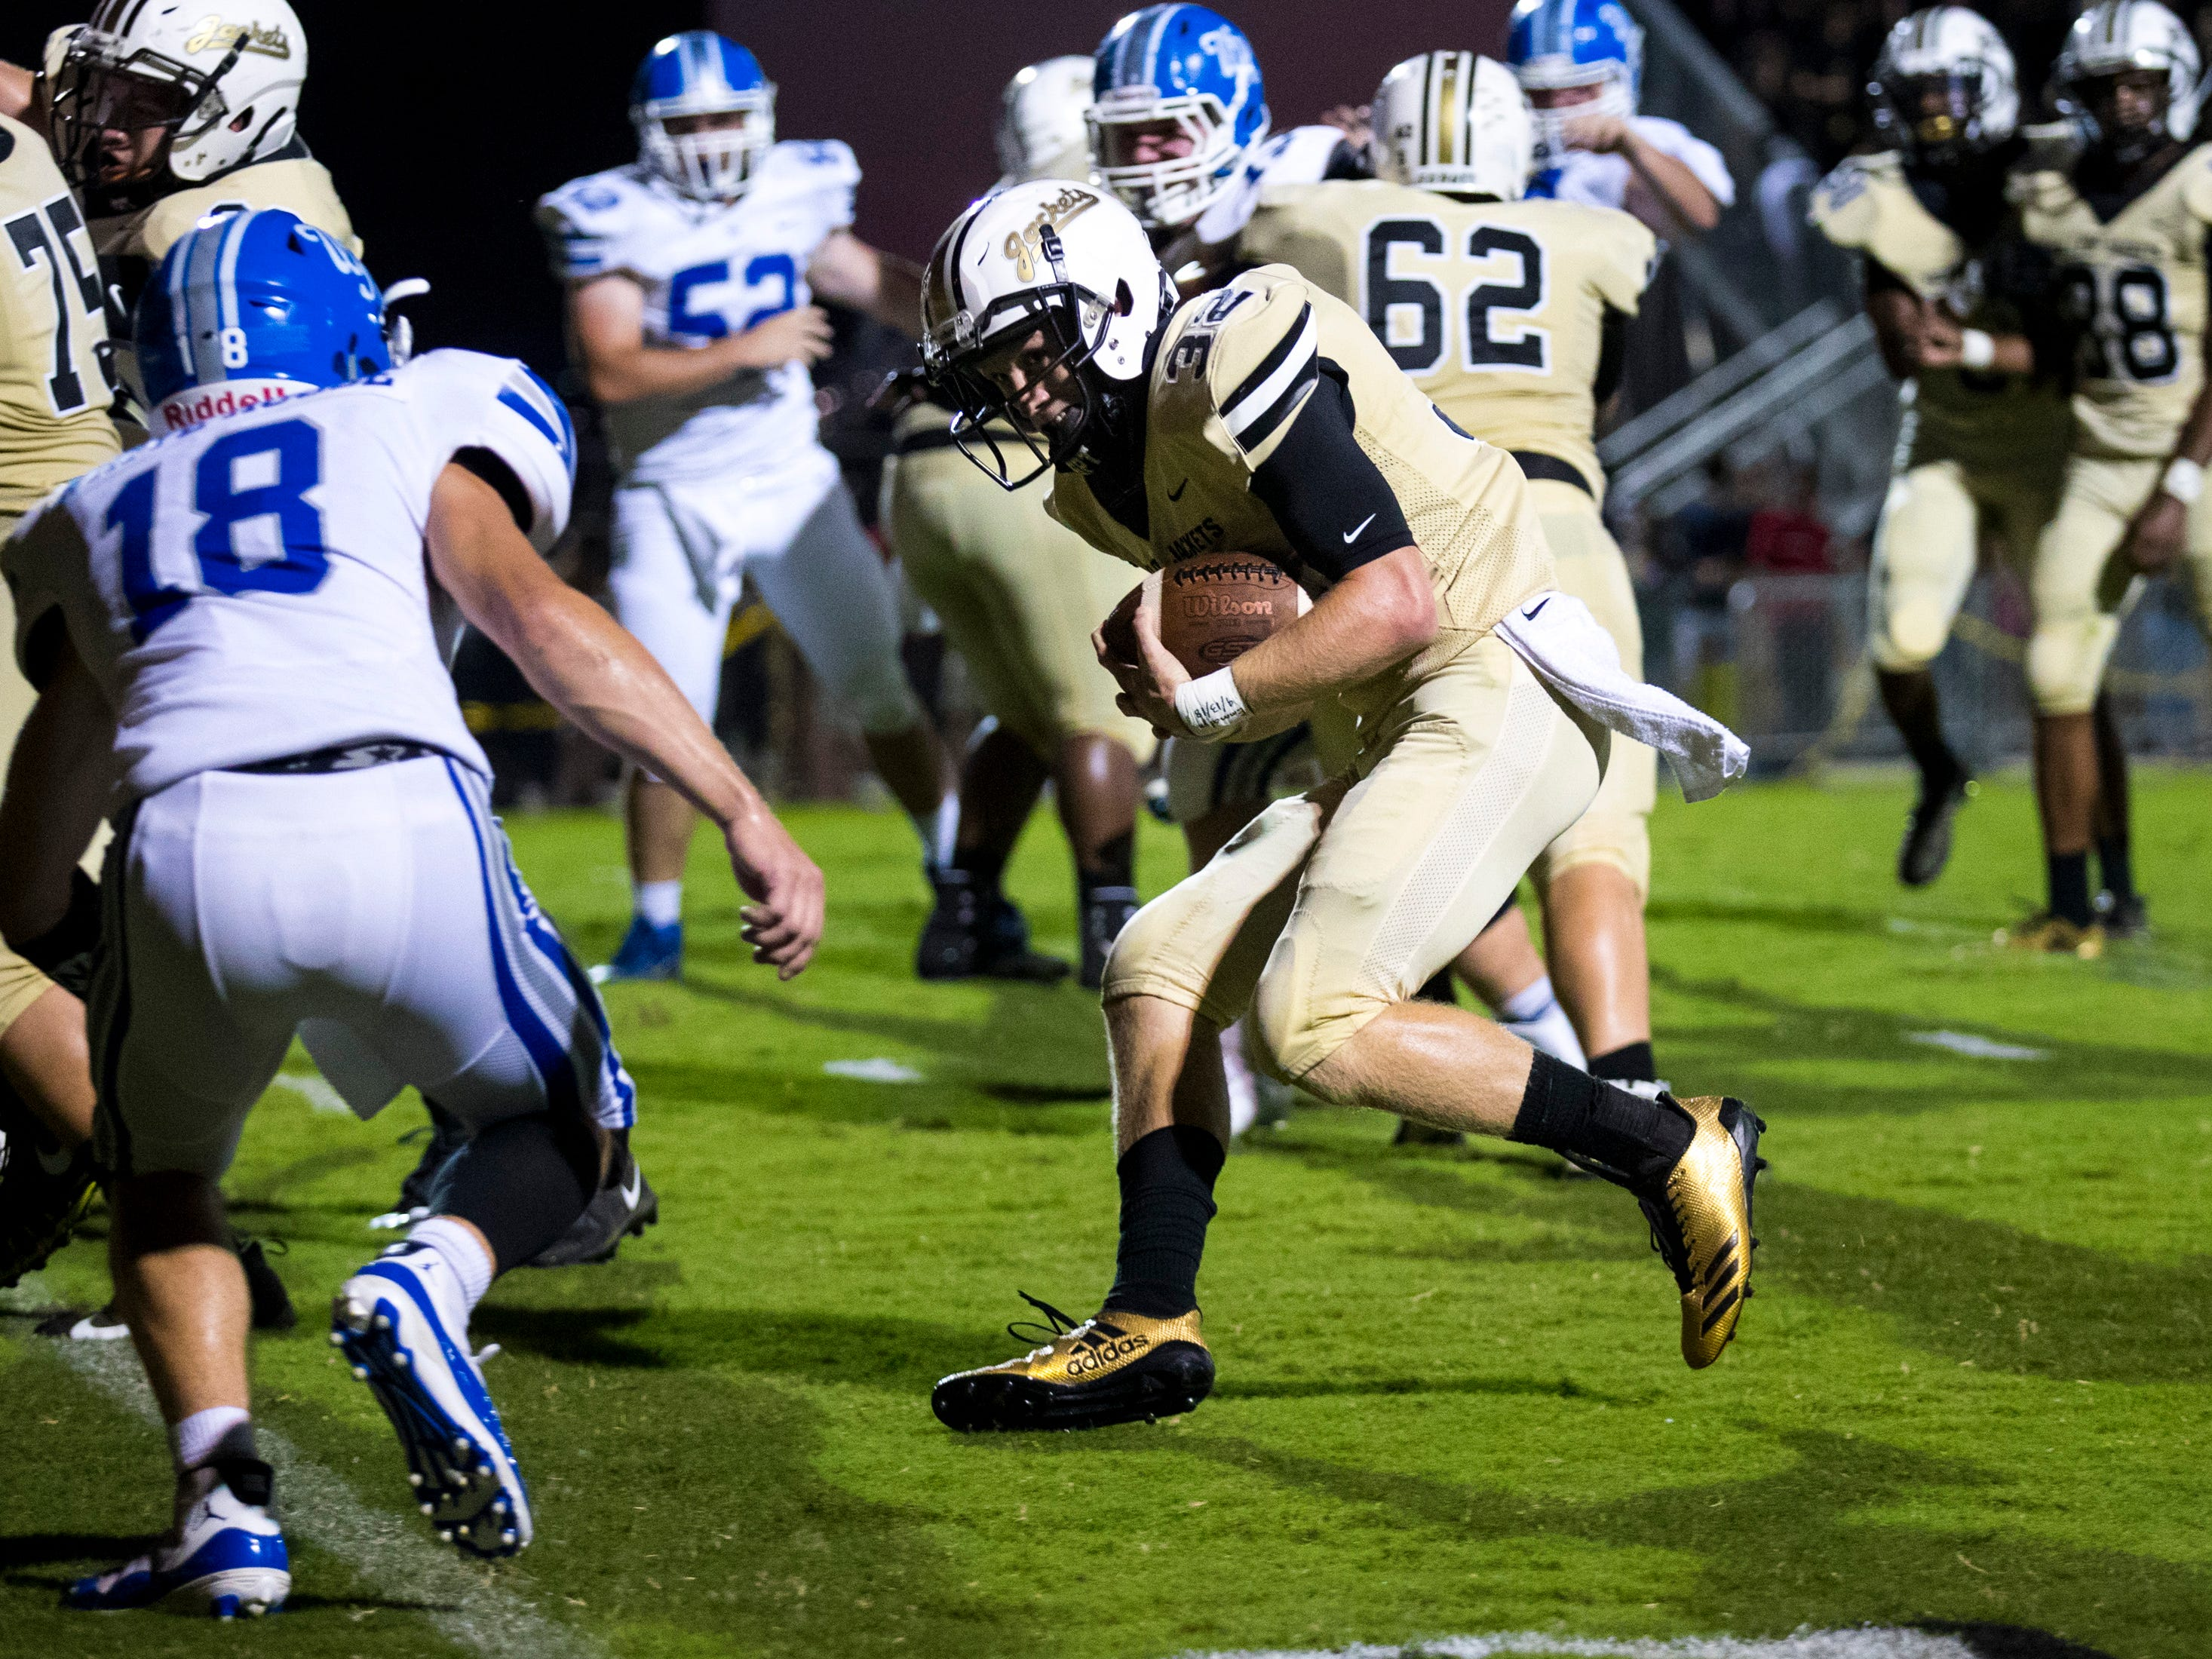 Springfield's Bryan Hayes (32) makes his way into the end zone on a quarterback keeper during Springfield's game against White House at Springfield High School in Springfield on Friday, Sept. 14, 2018.